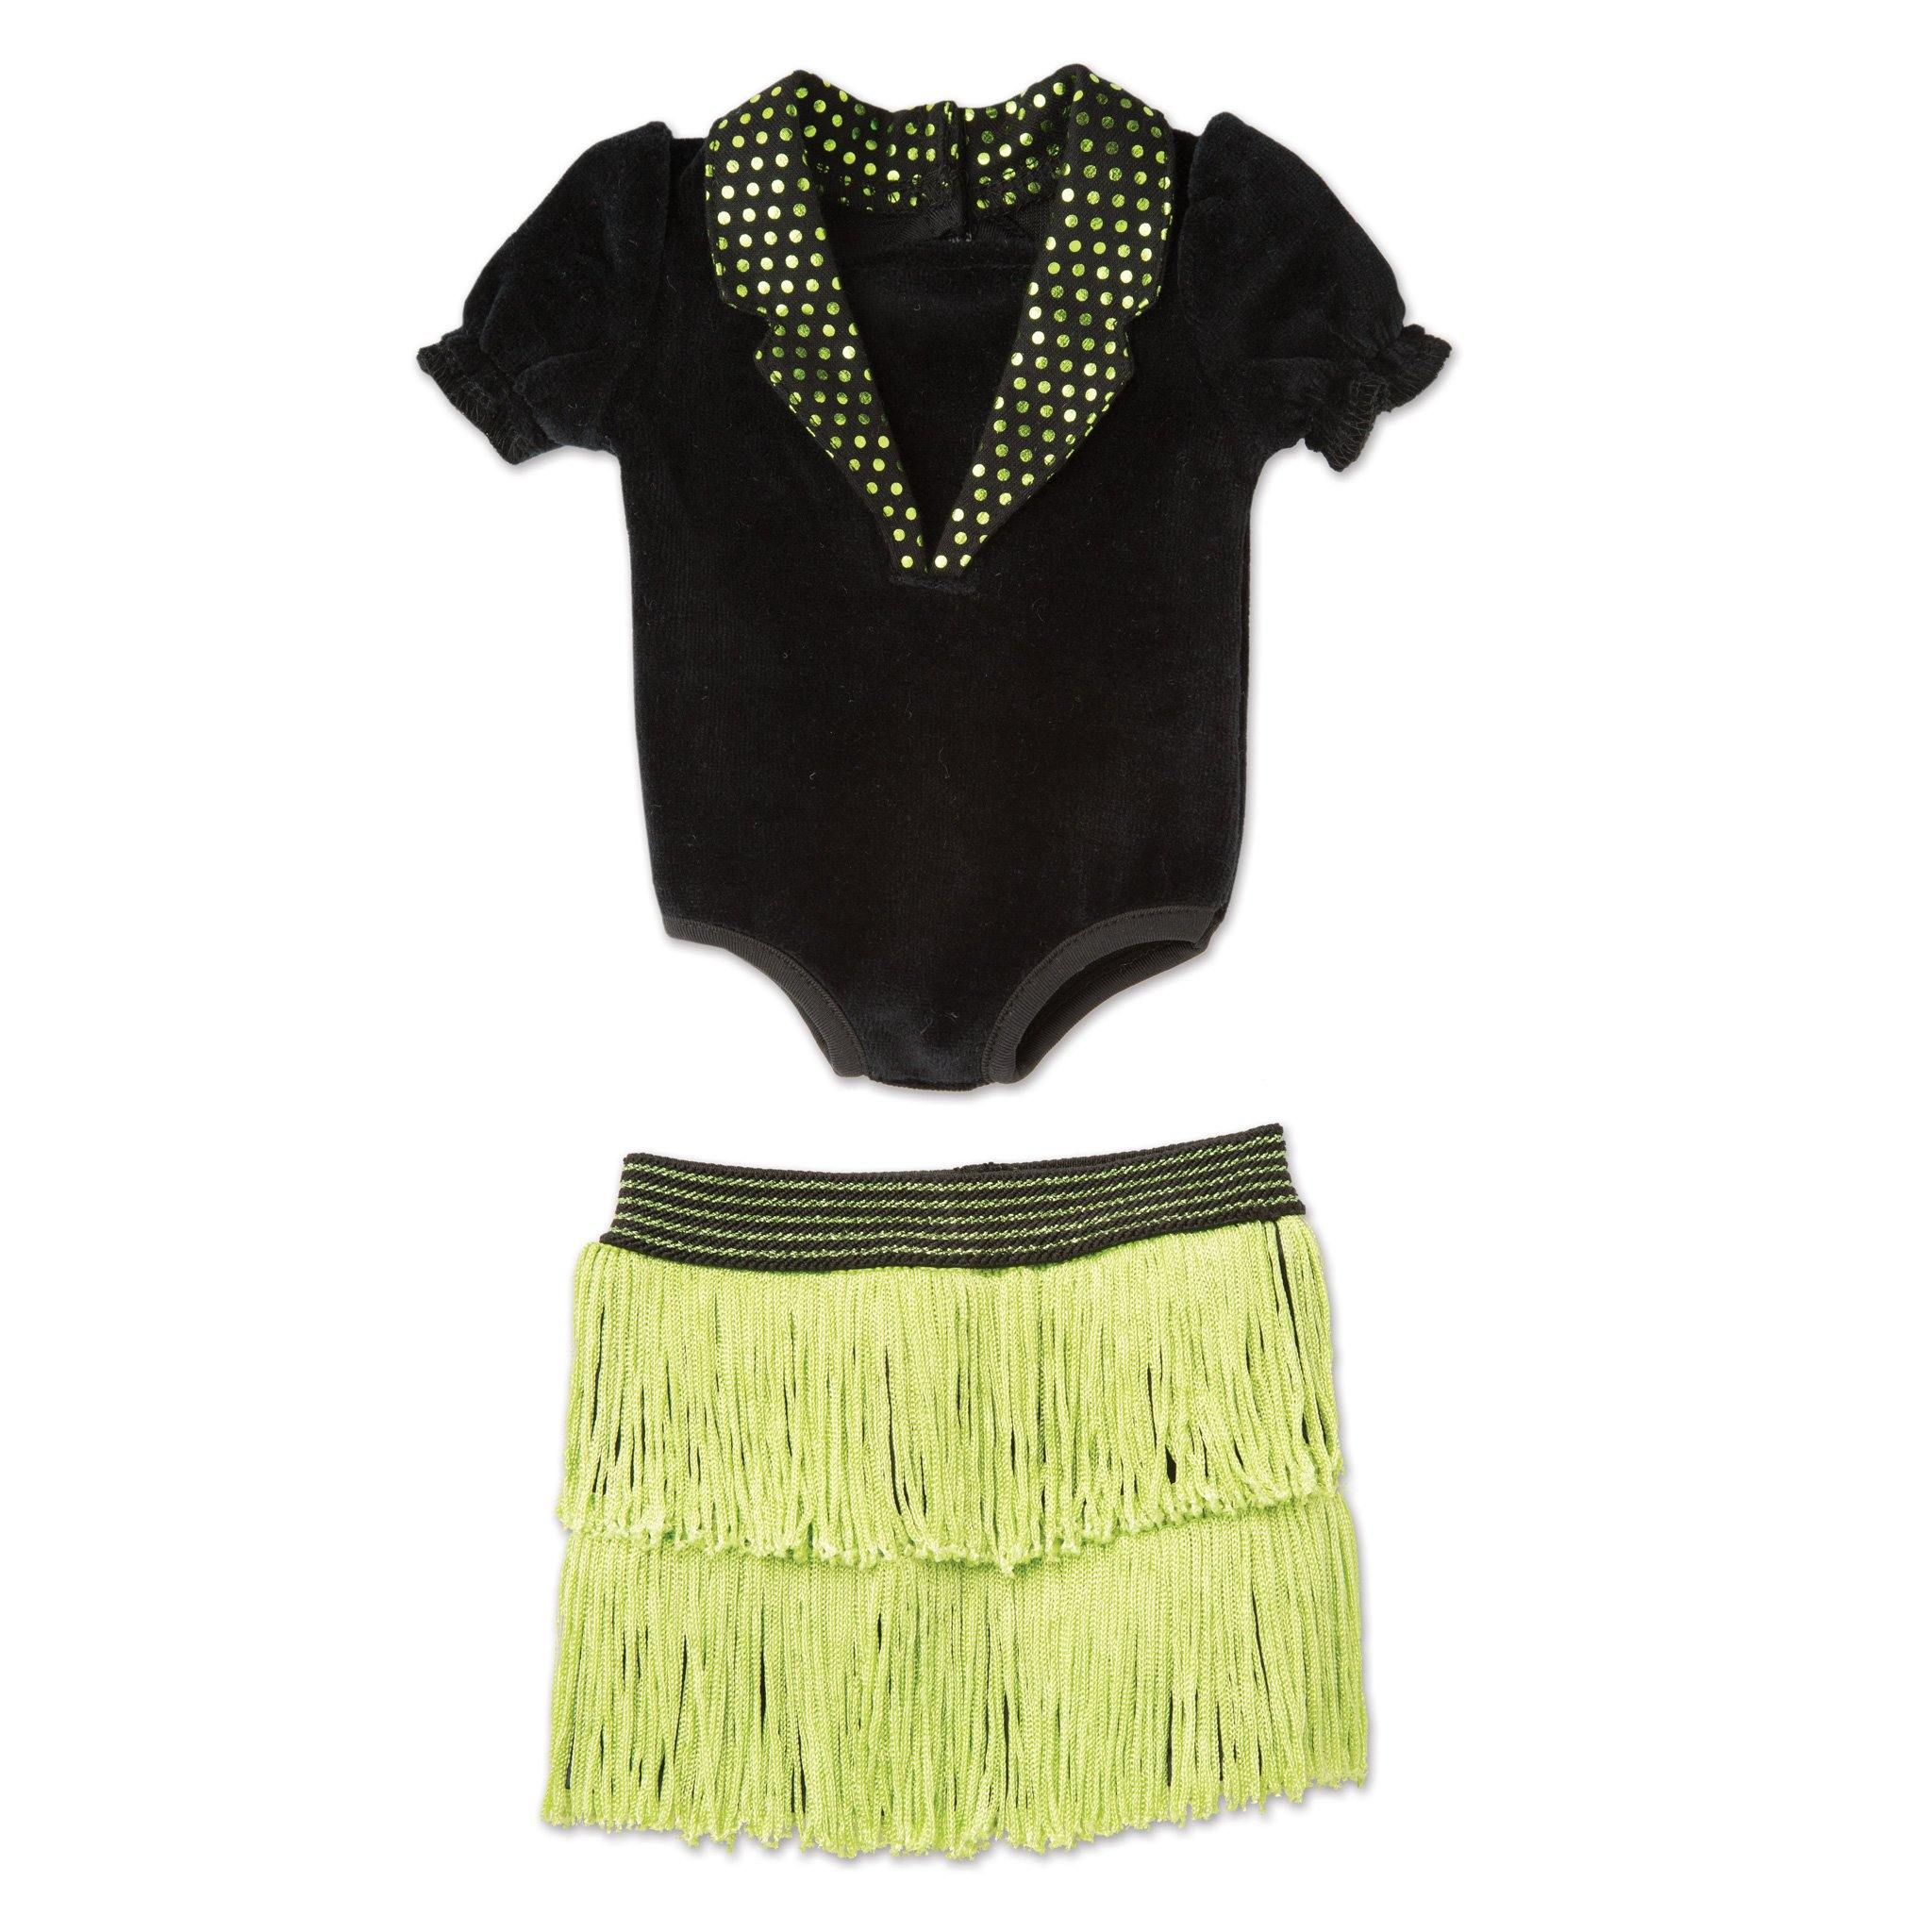 Happy Tap black bodysuit and green fringed skirt fits all 18 inch dolls.